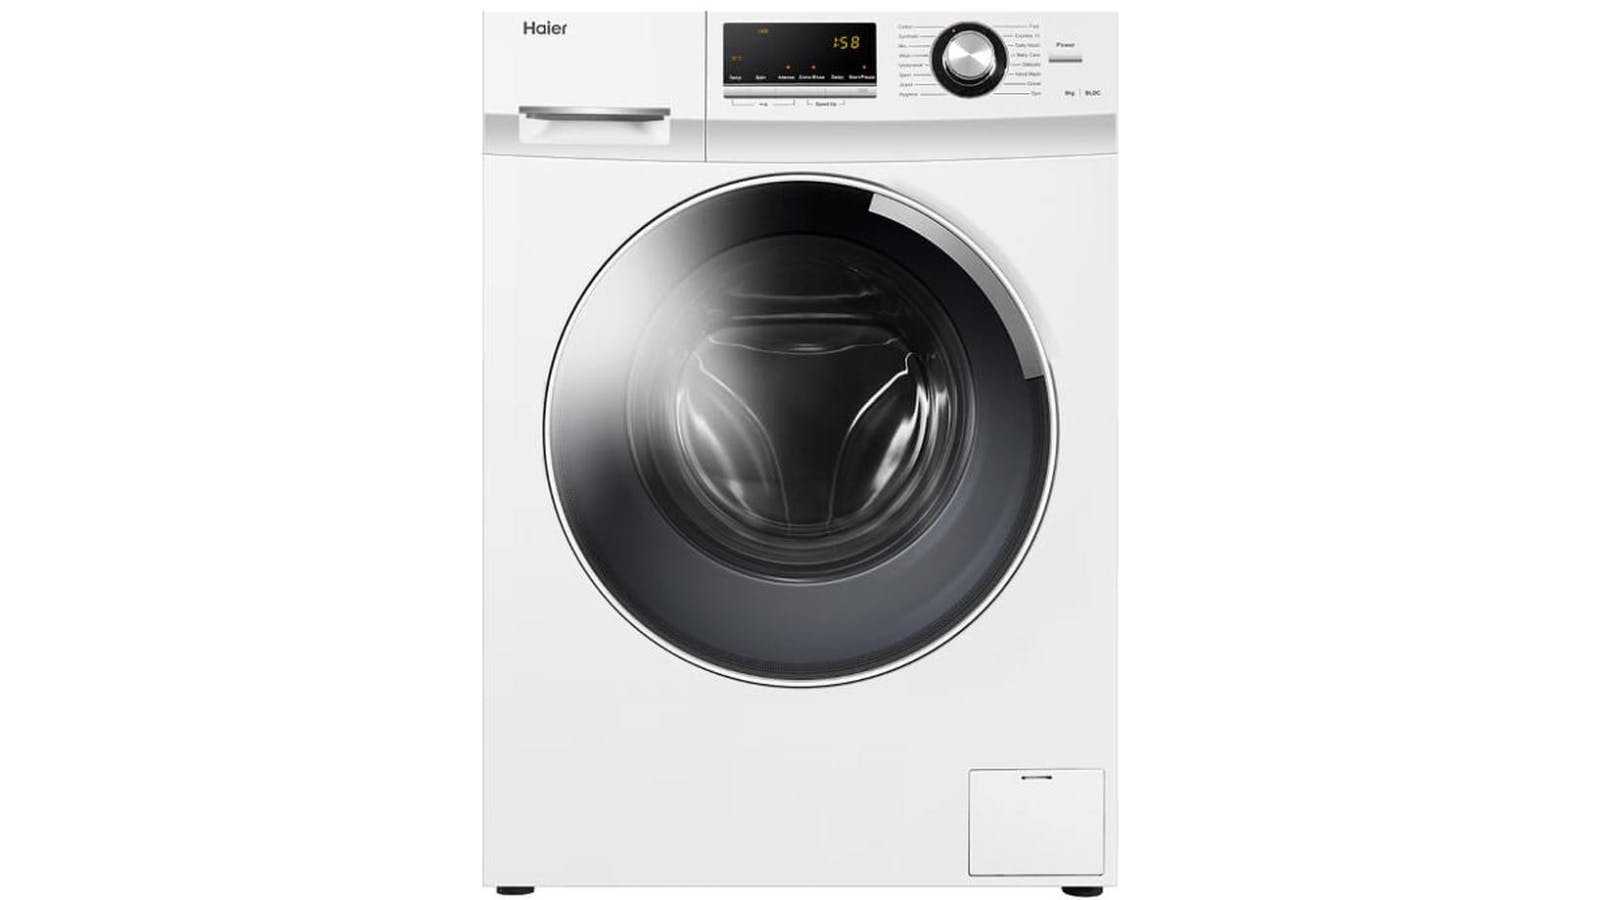 haier 8kg front load washing machine review